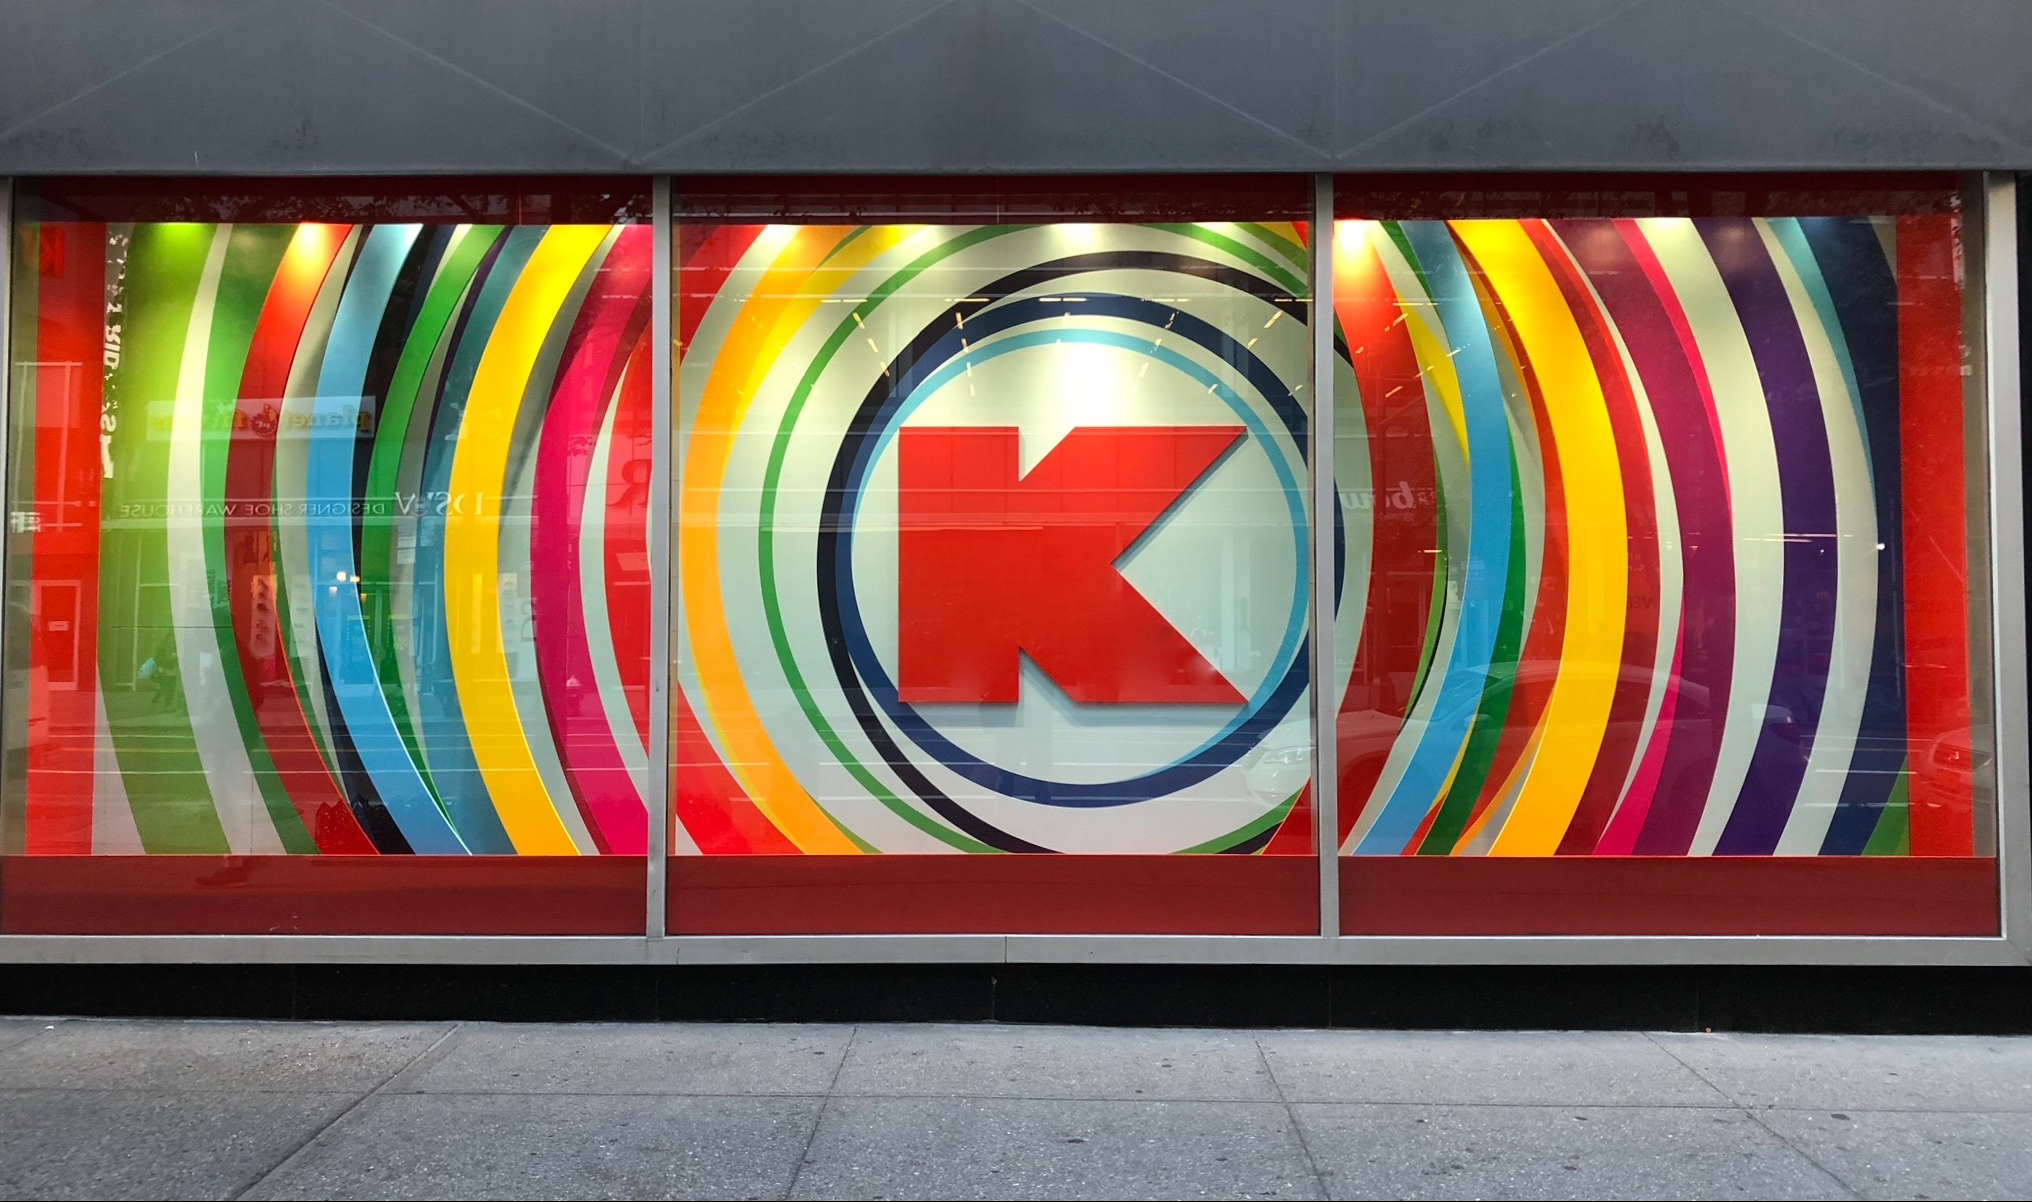 Kmart NYC Penn Station Animated Storefront Windows